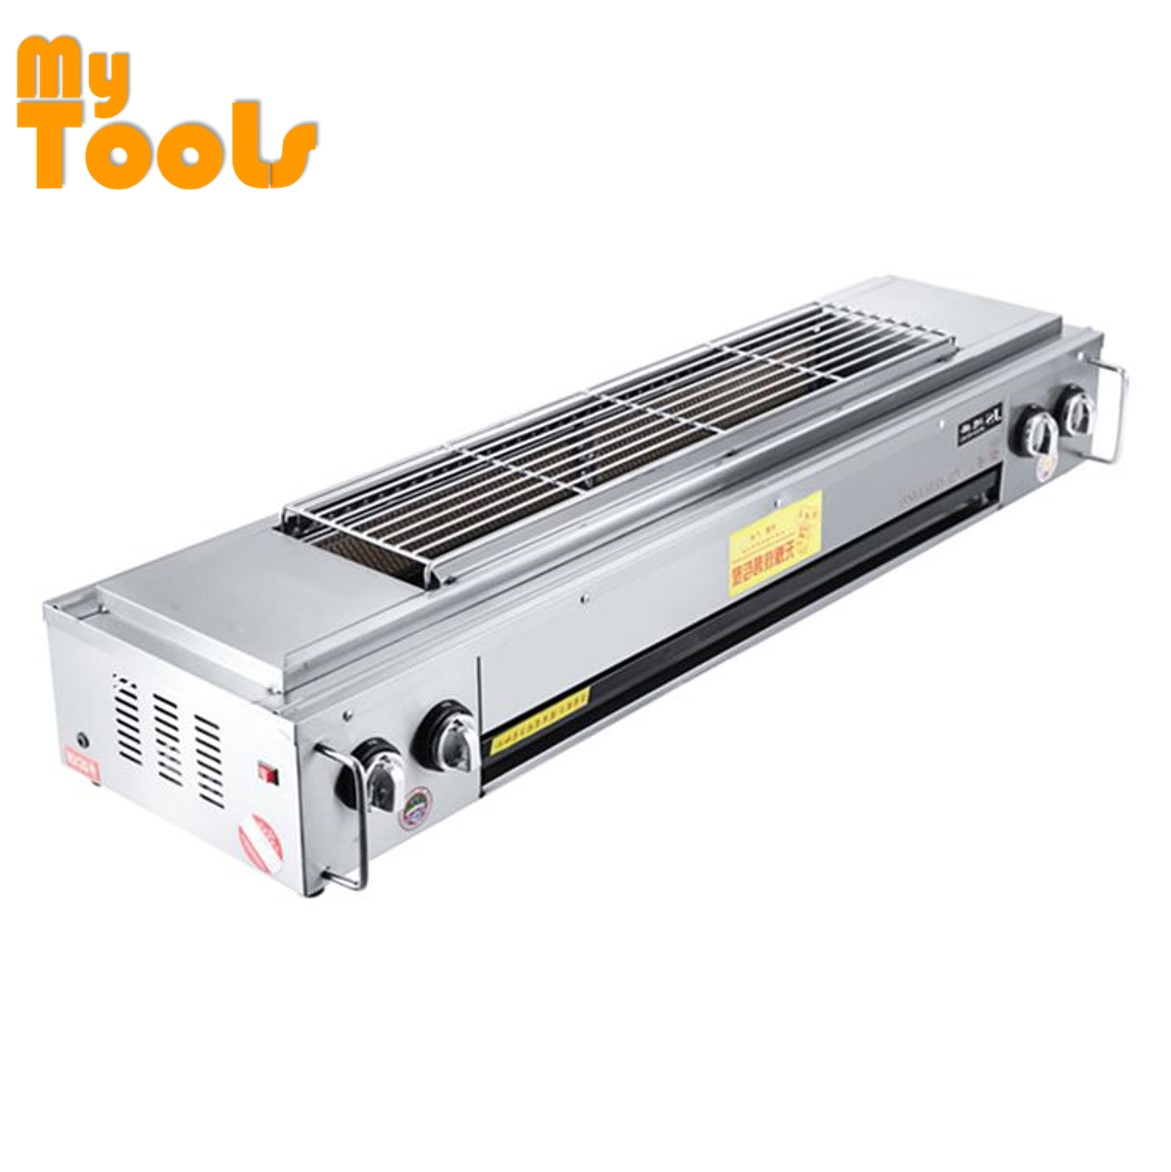 Mytools Stainless Steel 4 Burner Gas Barbecue BBQ Satay Grill Griddle